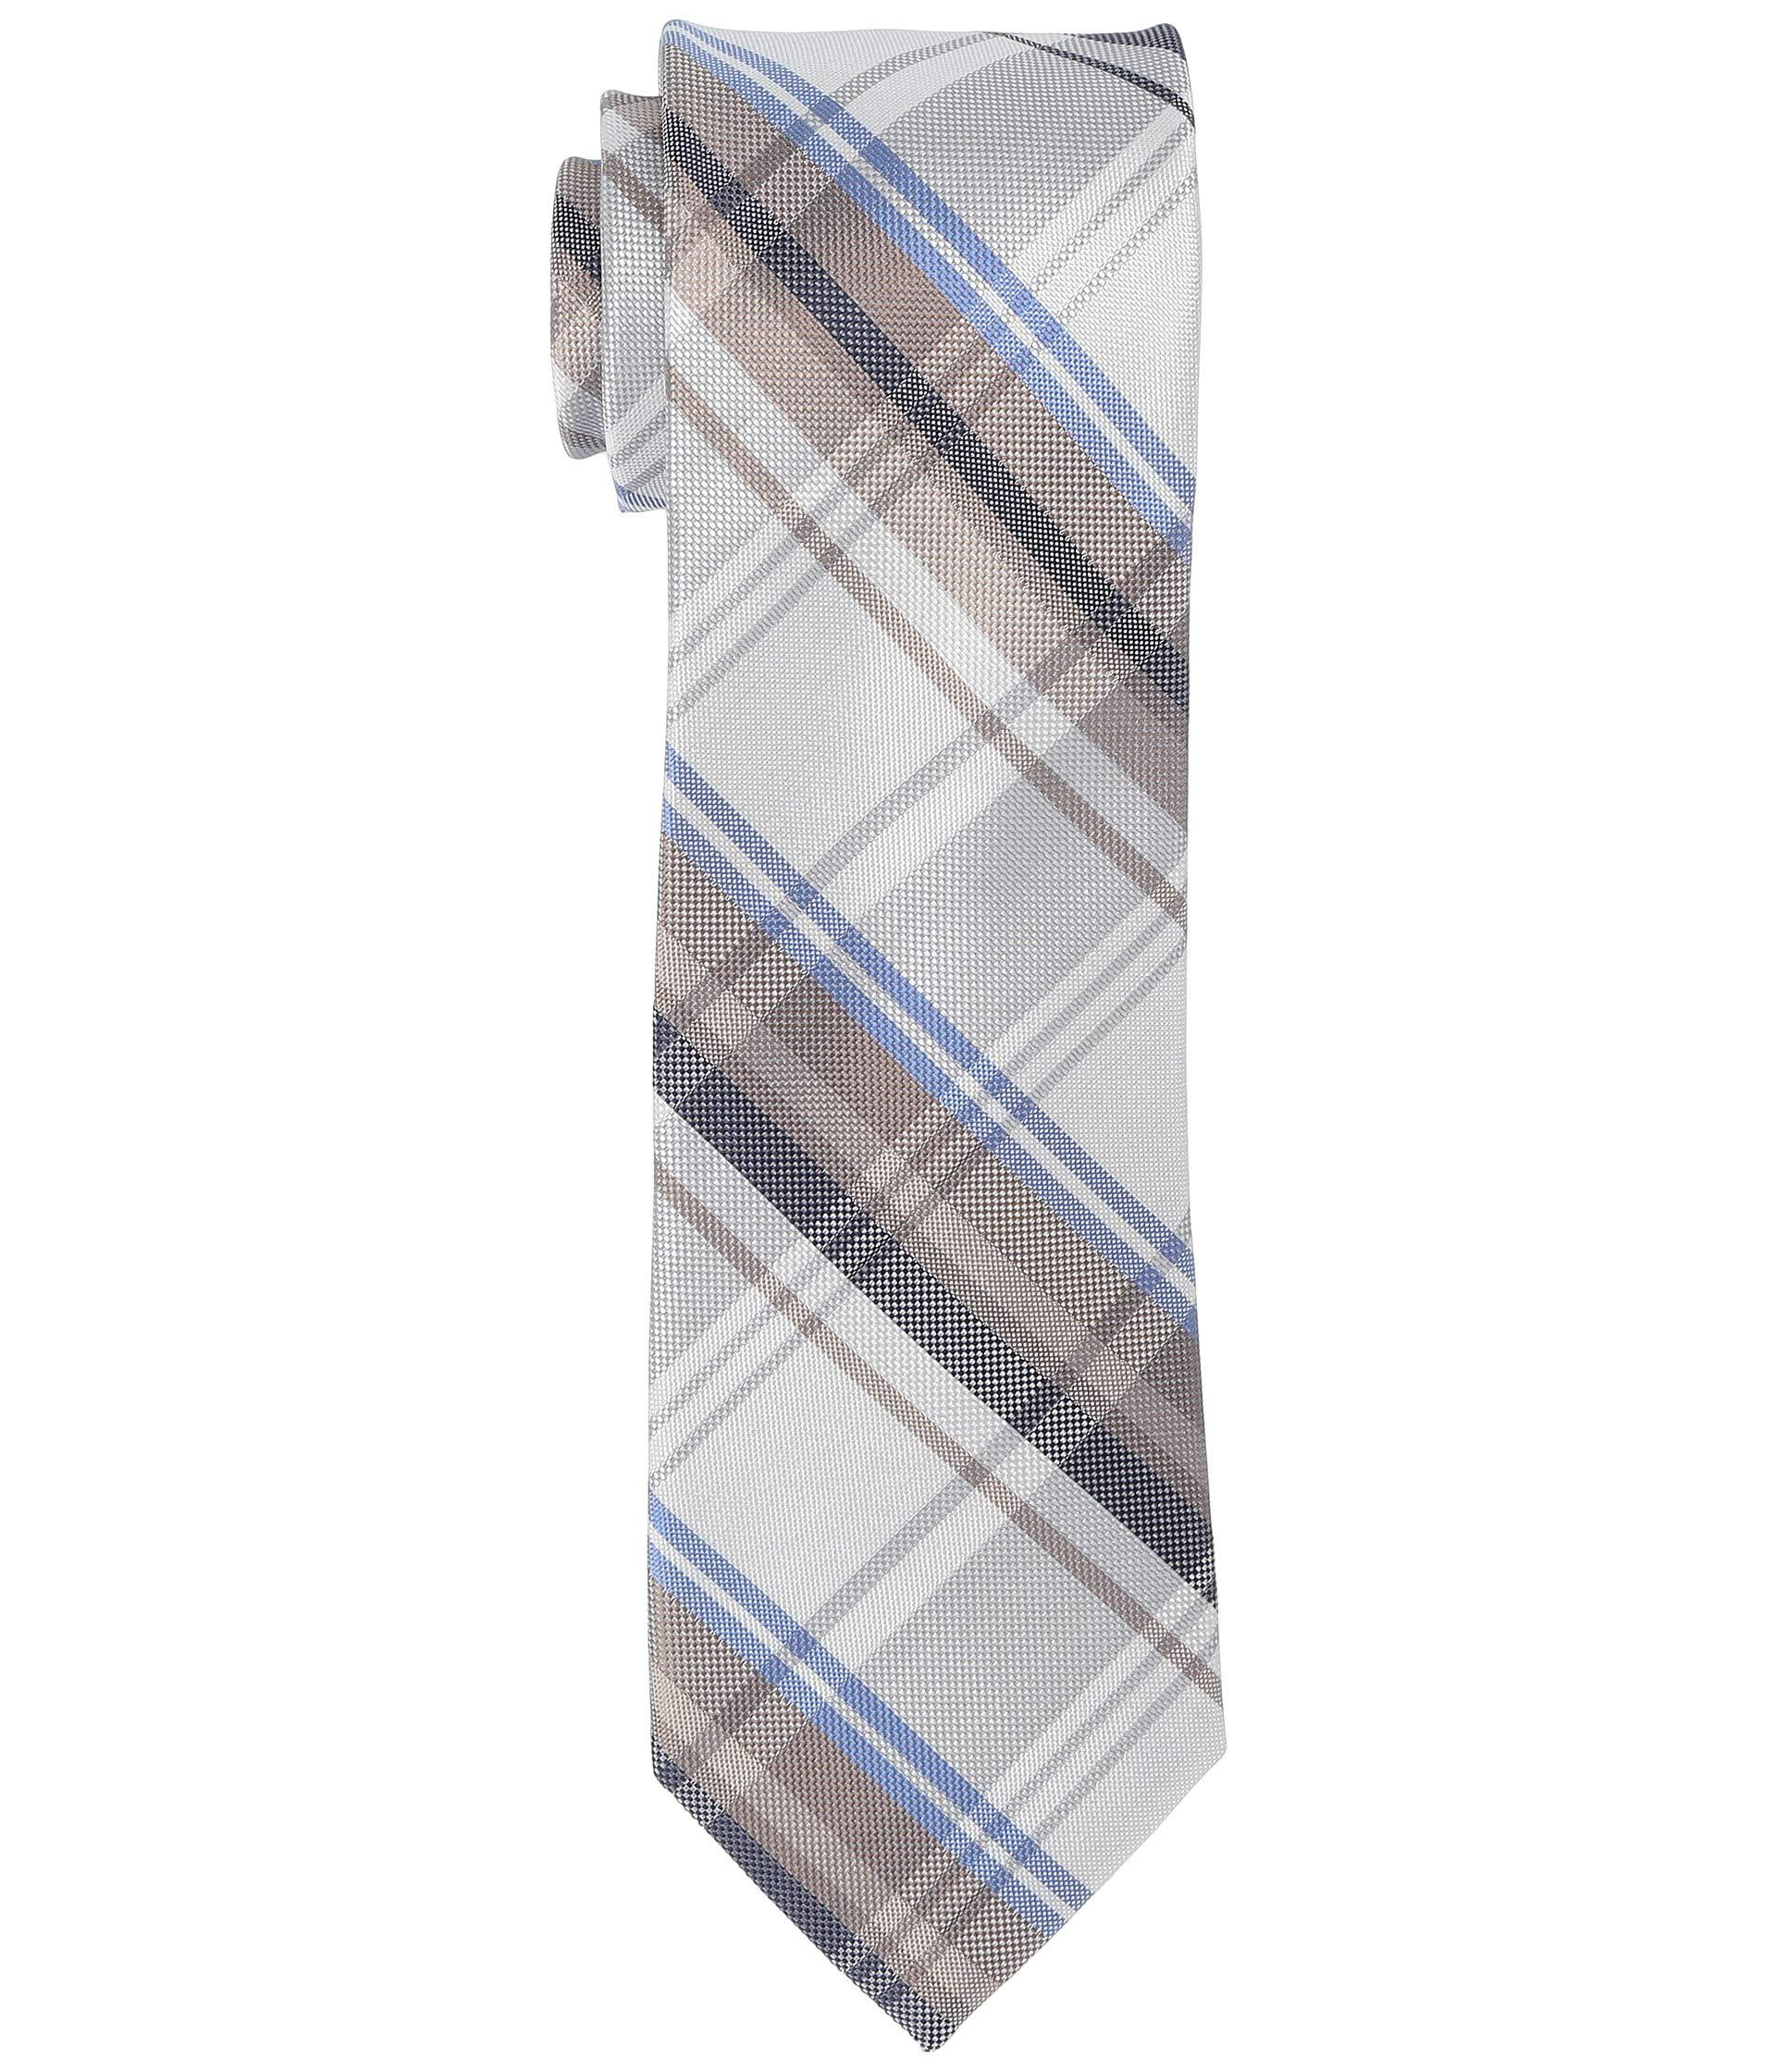 Plaid Taupe Lyst Kenneth Cole Reaction Isaac Plaid Taupe Ties In Gray For Men